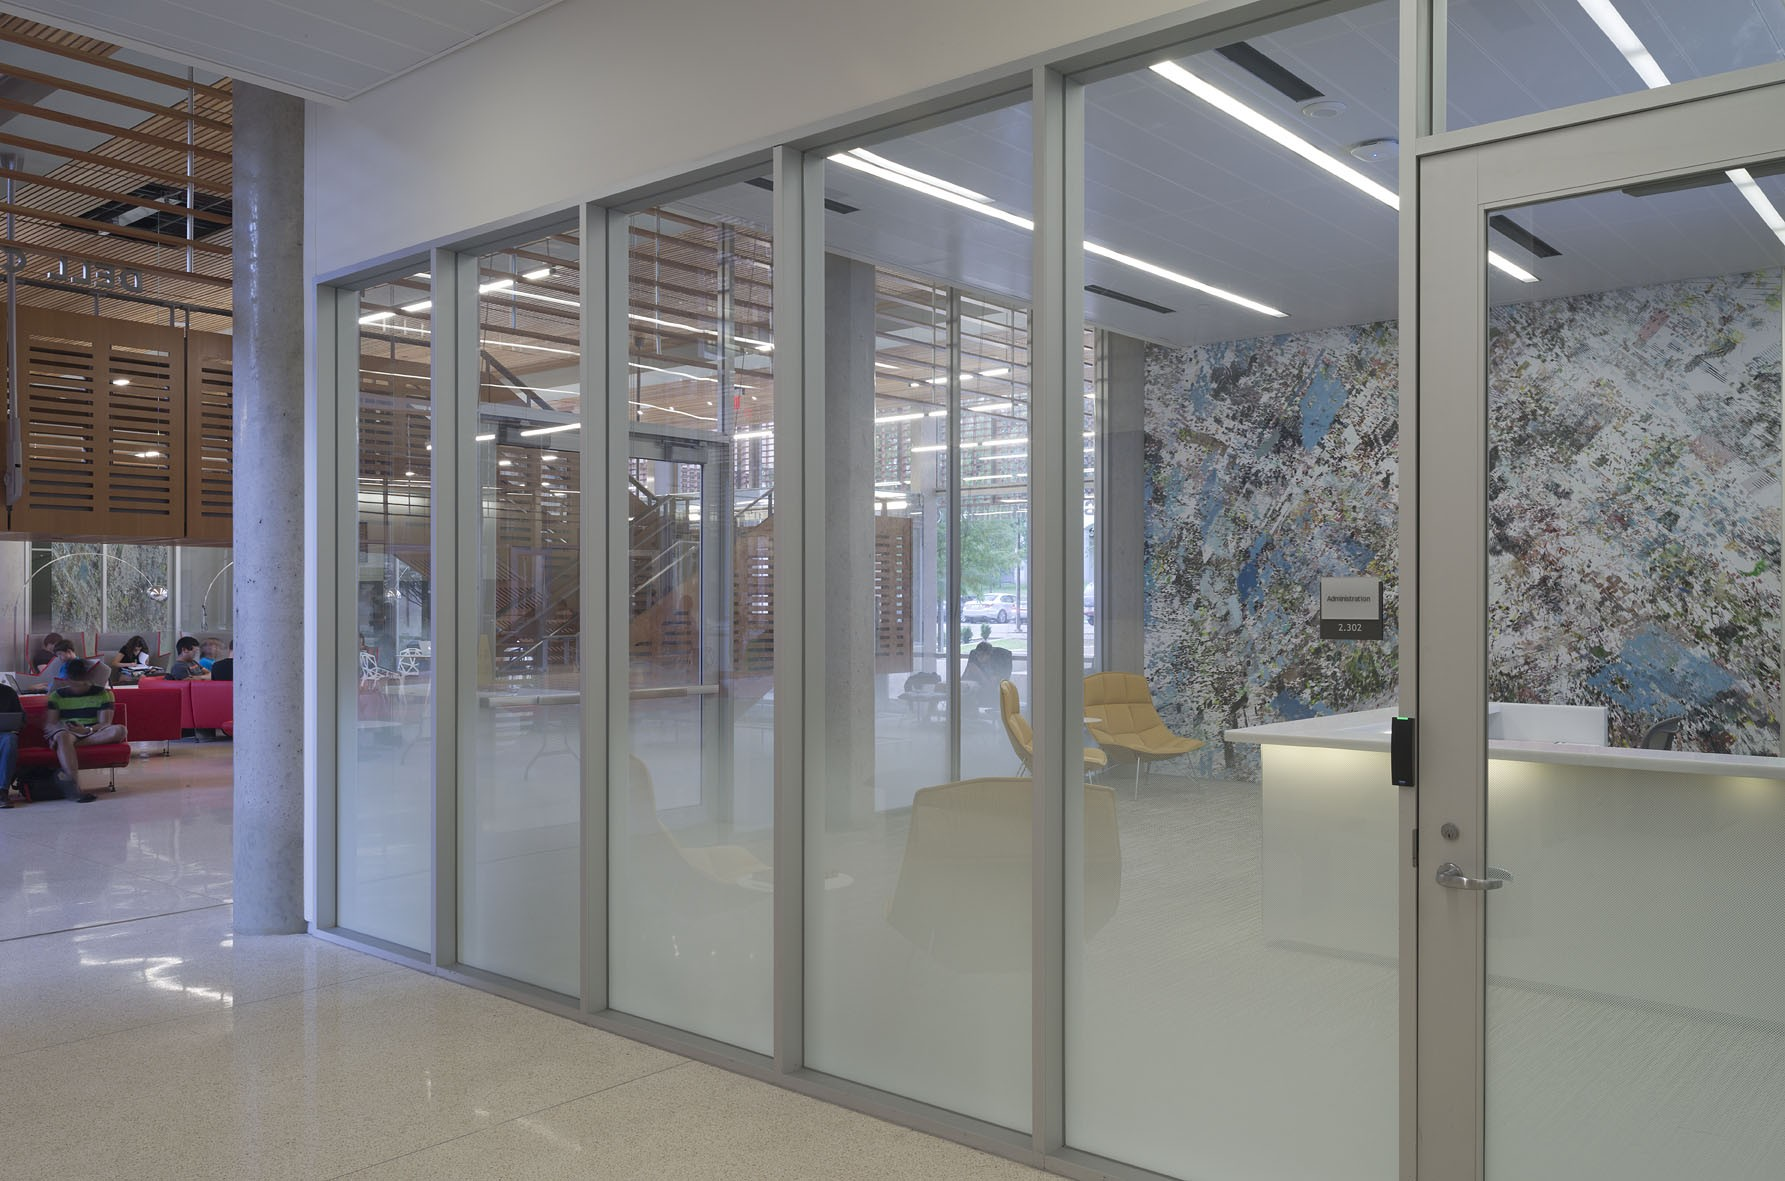 Windows in front of office space